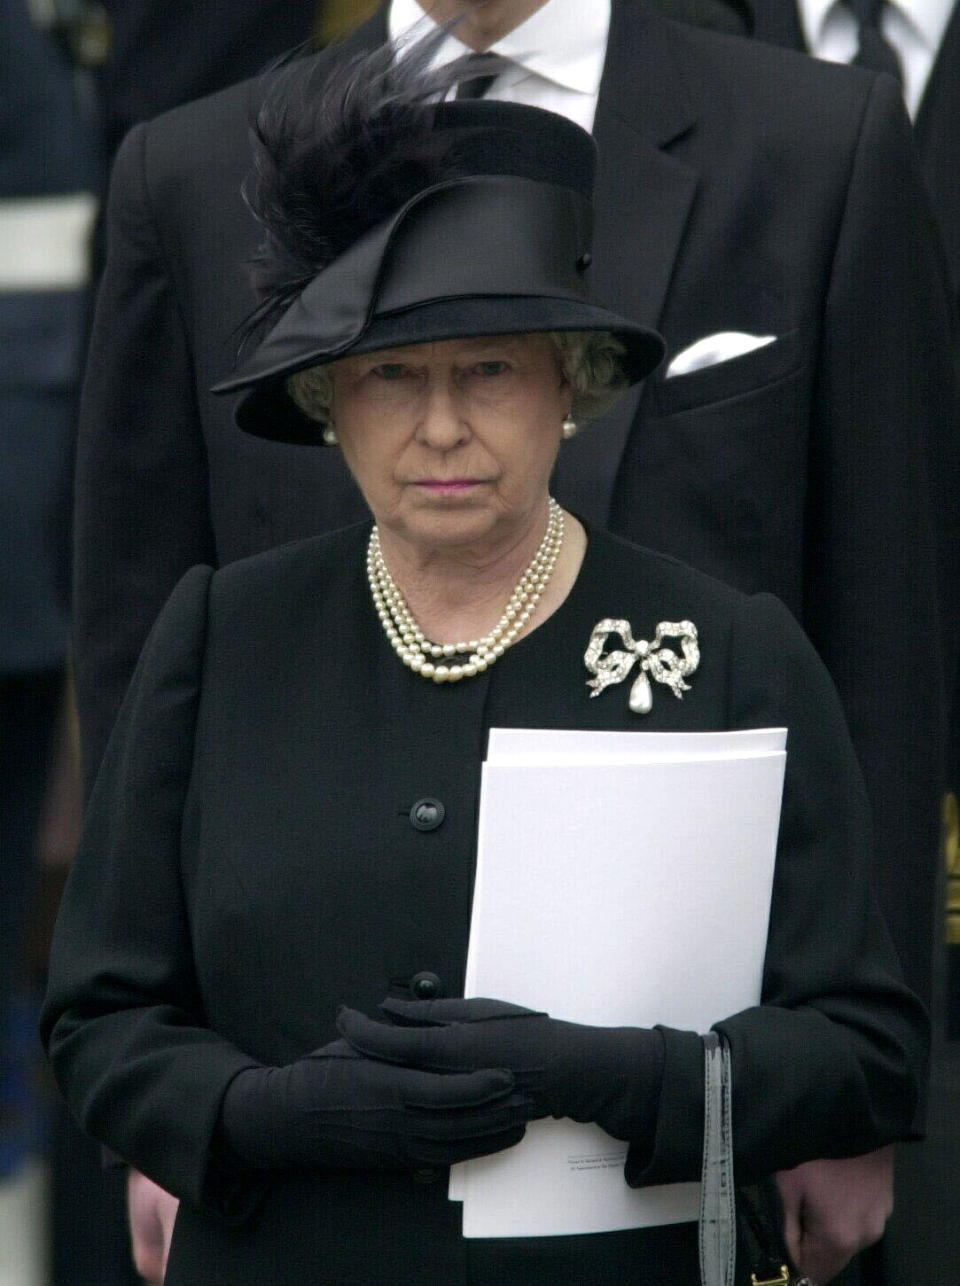 The Royal Family Gather At Westminster Abbey For The Funeral Of The Q. Mother Who Had Lived To The Age Of 101